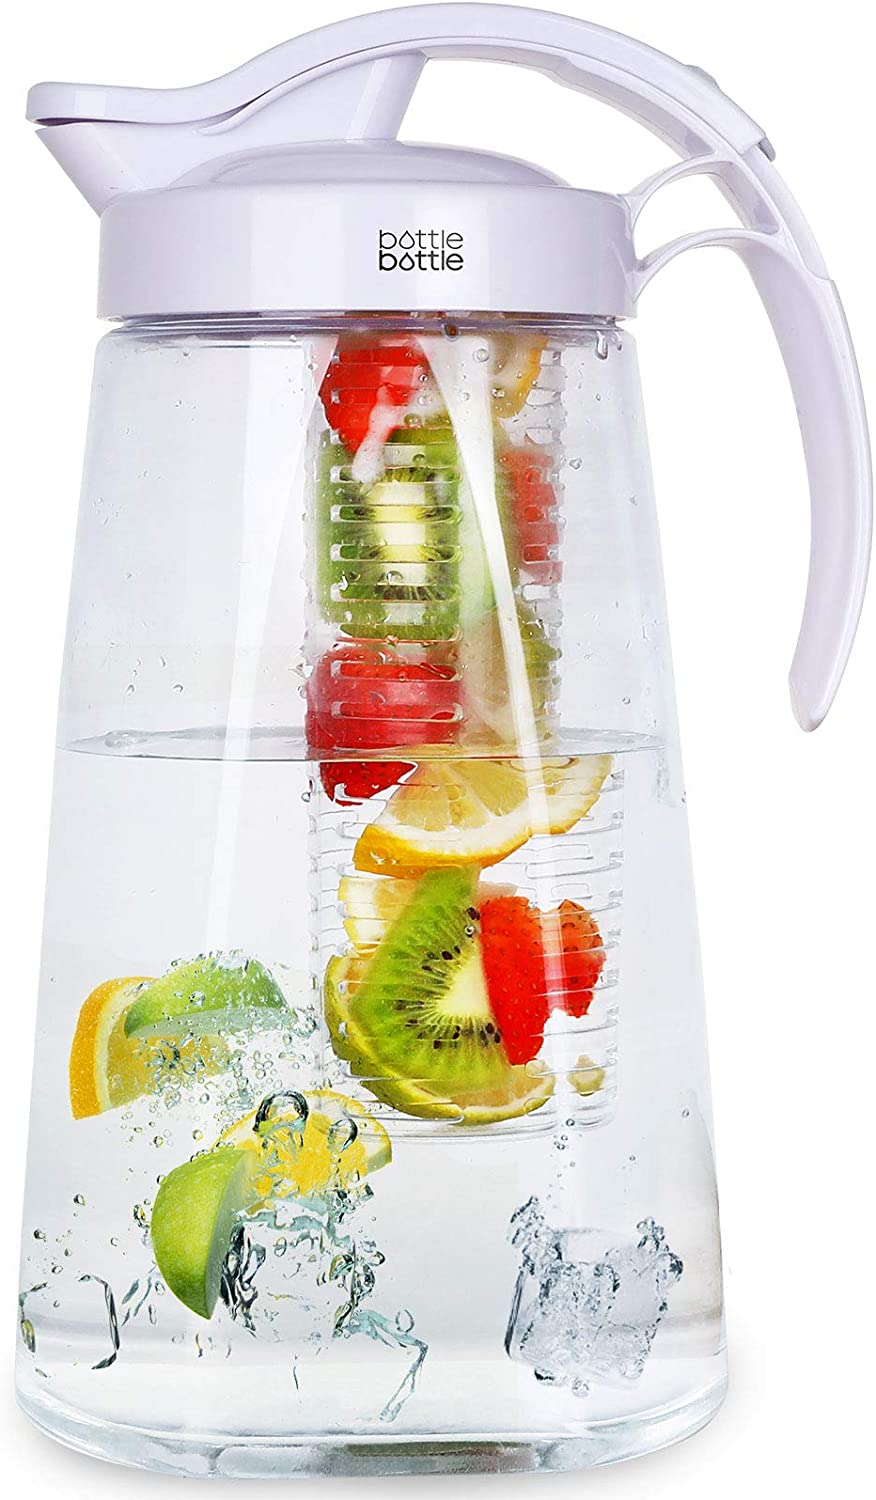 Water Pitcher with Lid and Handle Iced Tea and Fruit Infuser Pitcher Tritan High Heat Resistance Infusion Pitcher for Fridge 2.2L Capacity Perfect for Hot/Cold Water Beverage Sangria and Juice